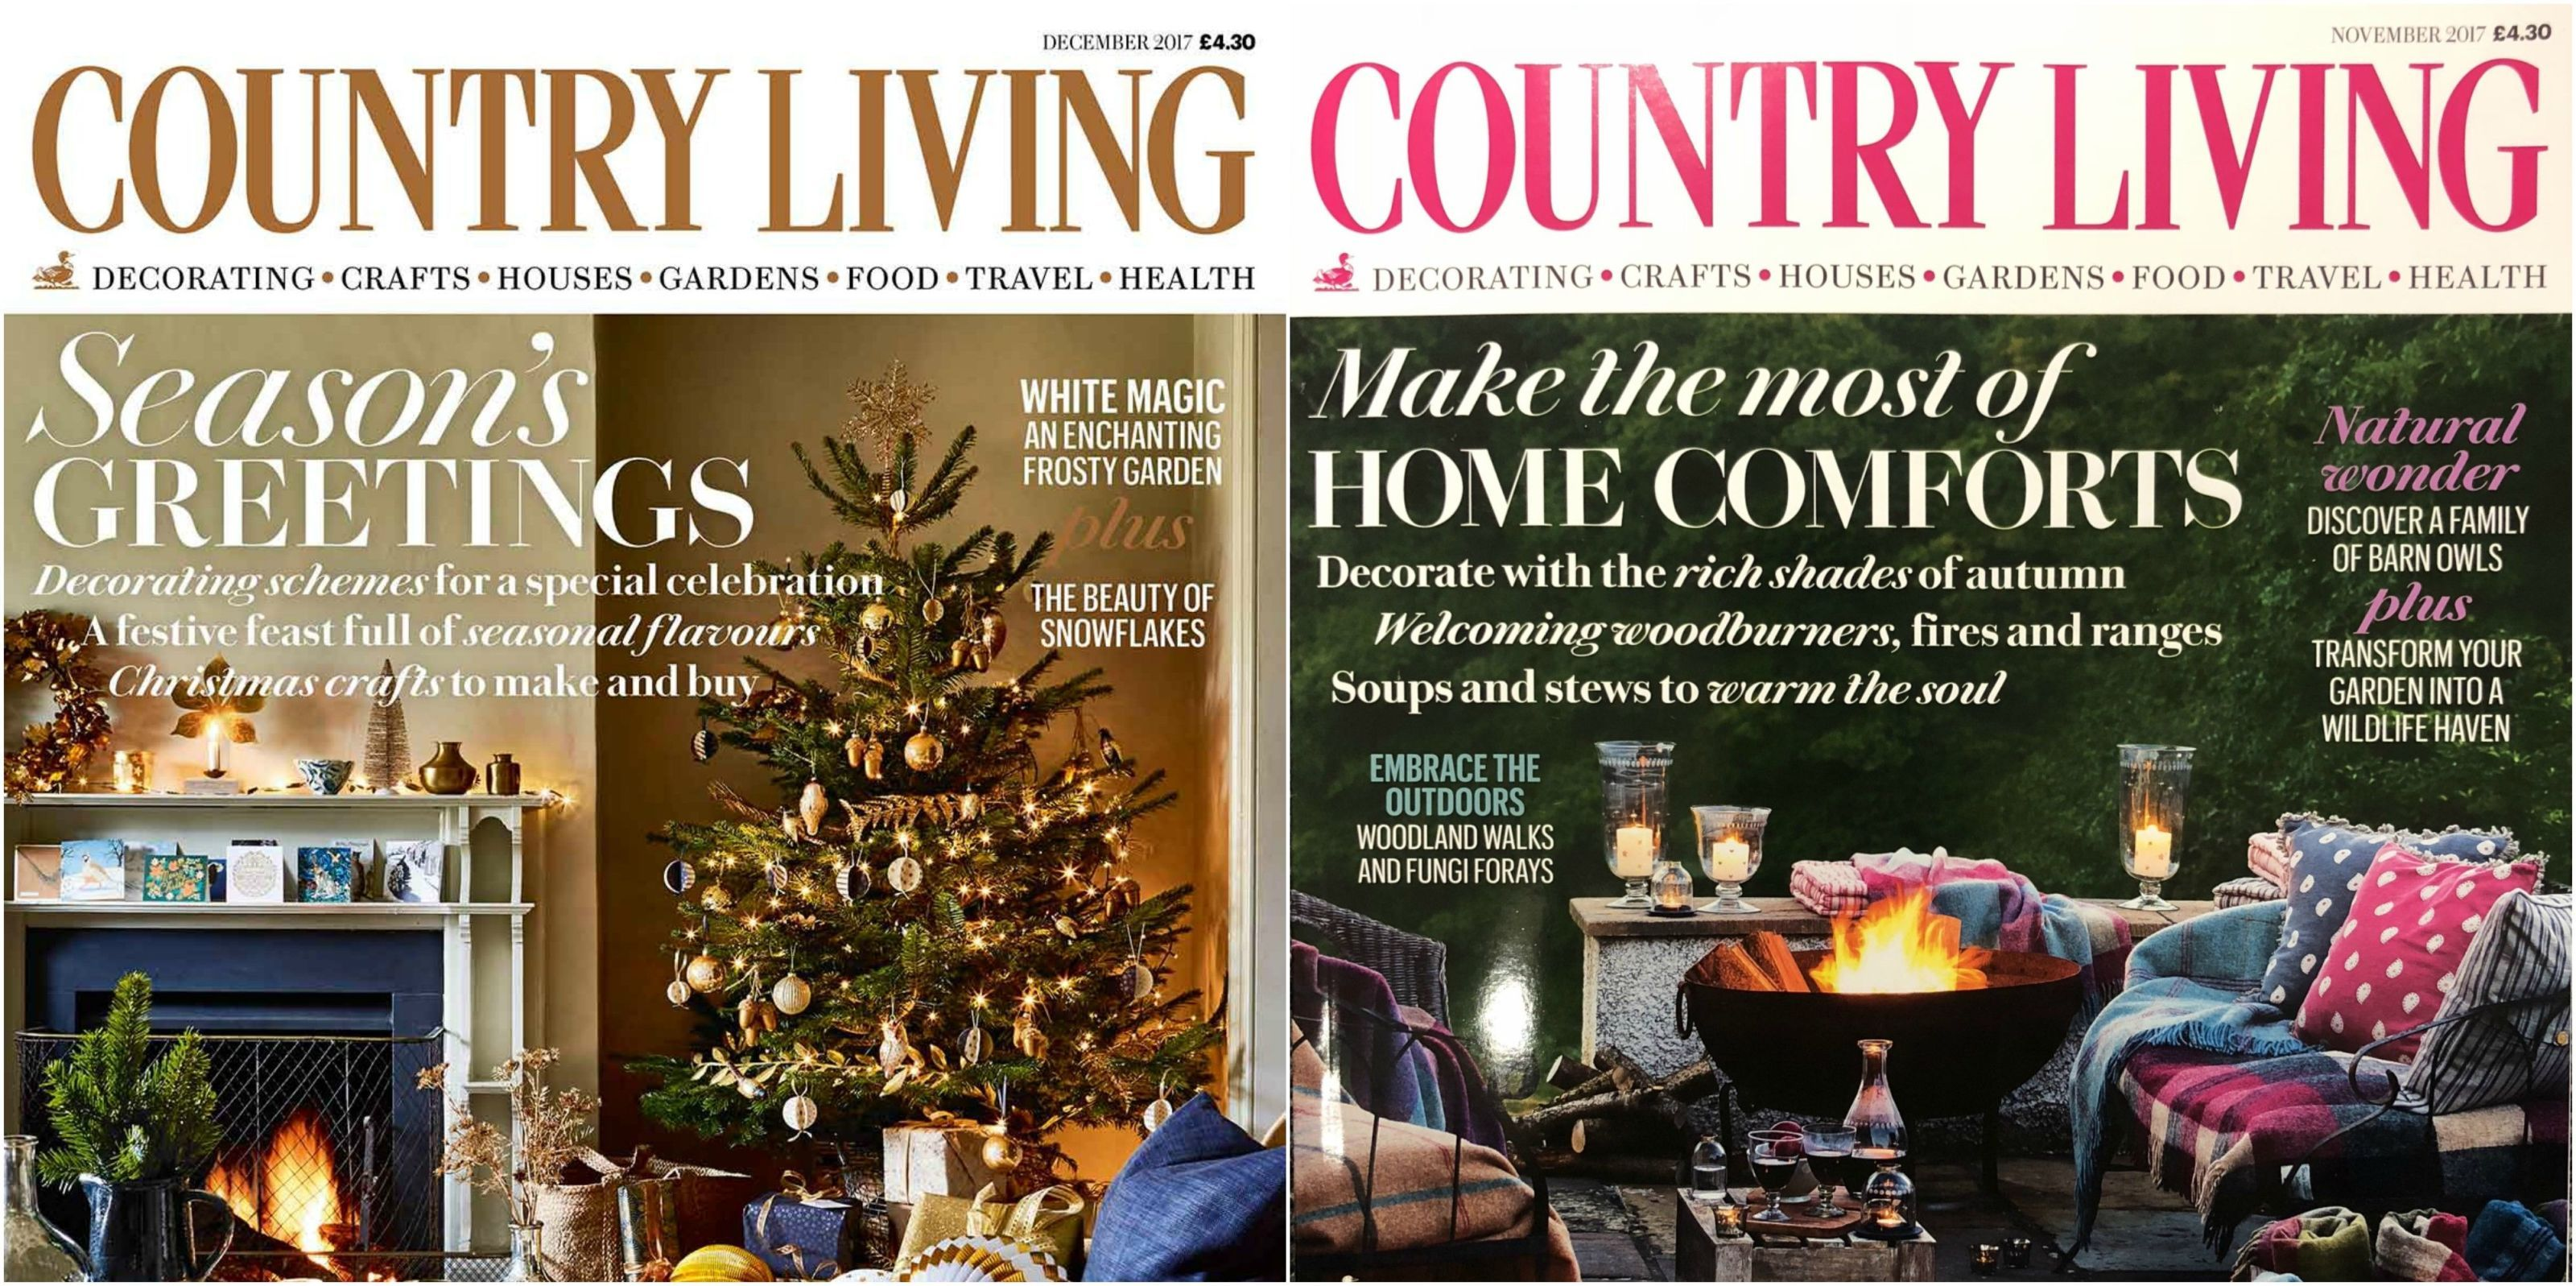 Subscribe to Country Living Magazine UK And Enjoy Exclusive Benefits